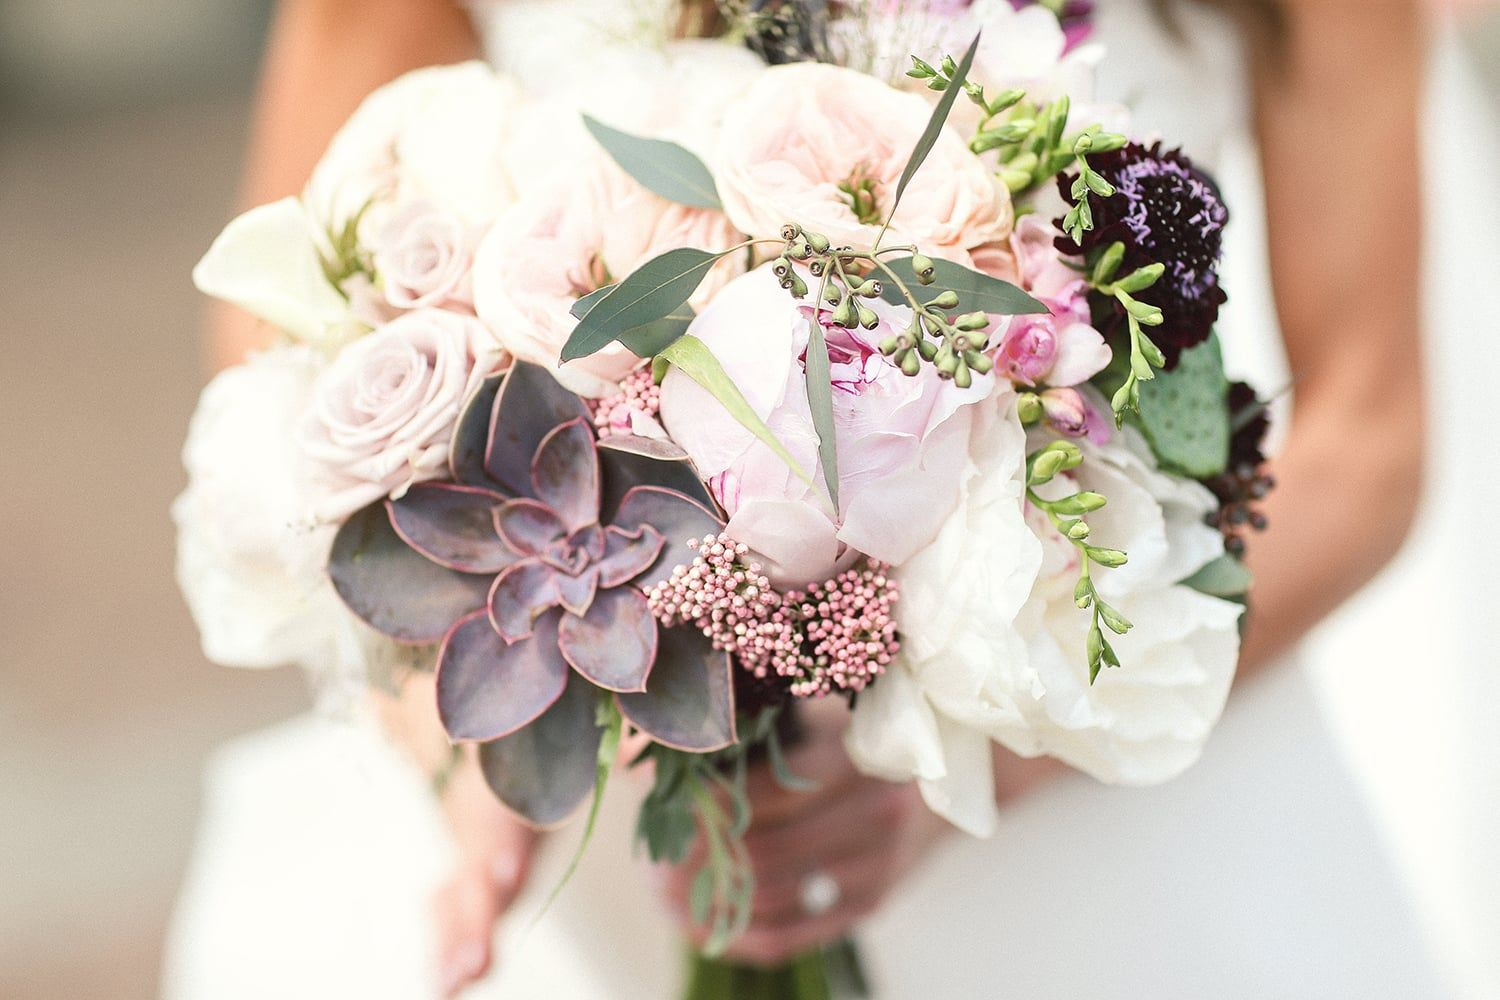 #Beautiful and #romantic #BrooklynBotanicalGarden #wedding - Photo by #AlisonConklin | Planned by #LyndseyHamiltonEvents | Floral Design by #FleursBella http://bit.ly/1Zy73kK Featured on #TheKnot #1440 #fourteenforty